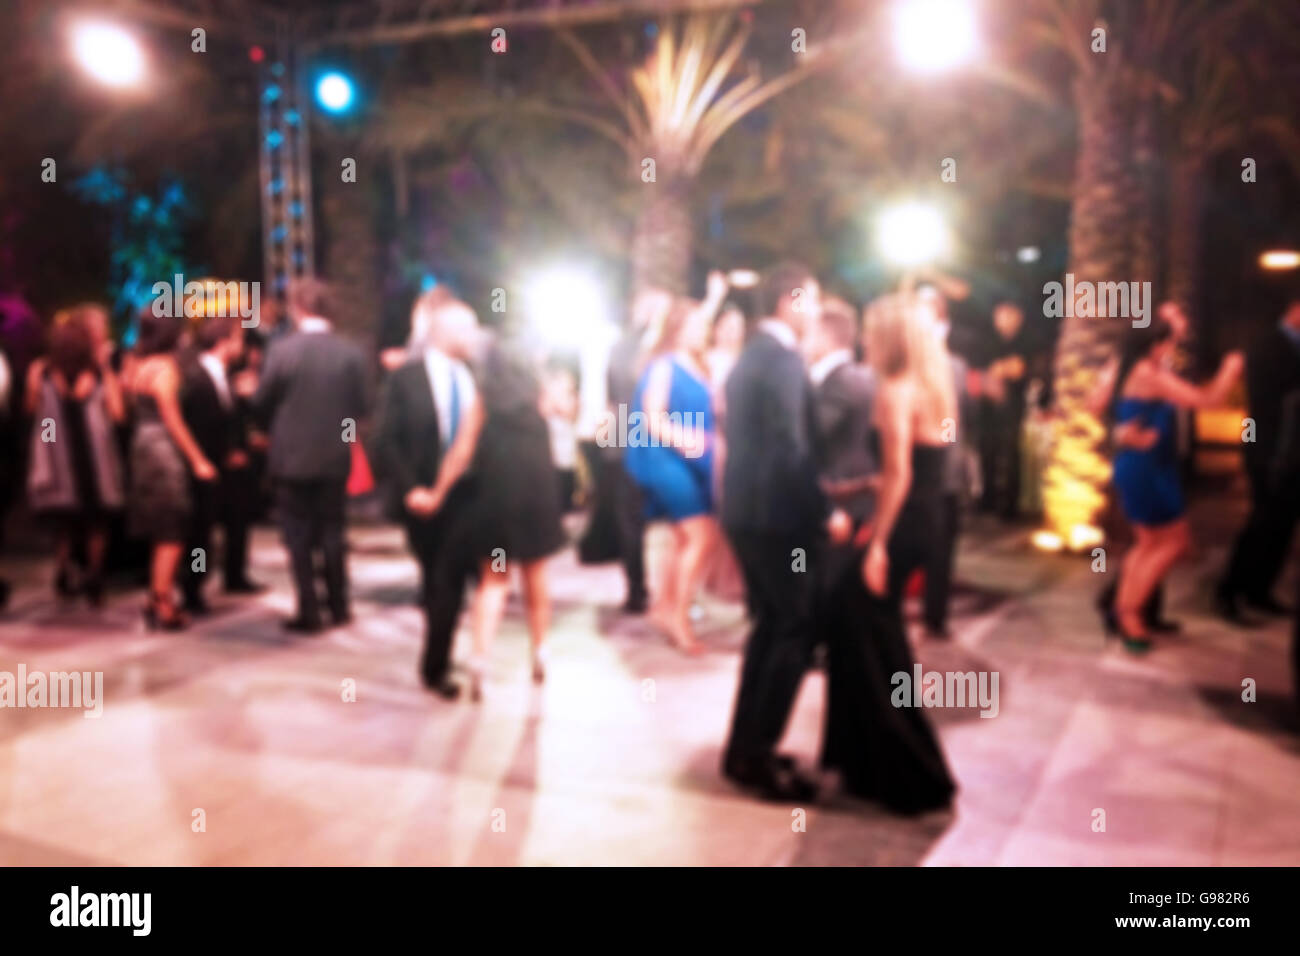 Blurred background of night dancing party outdoor - Stock Image